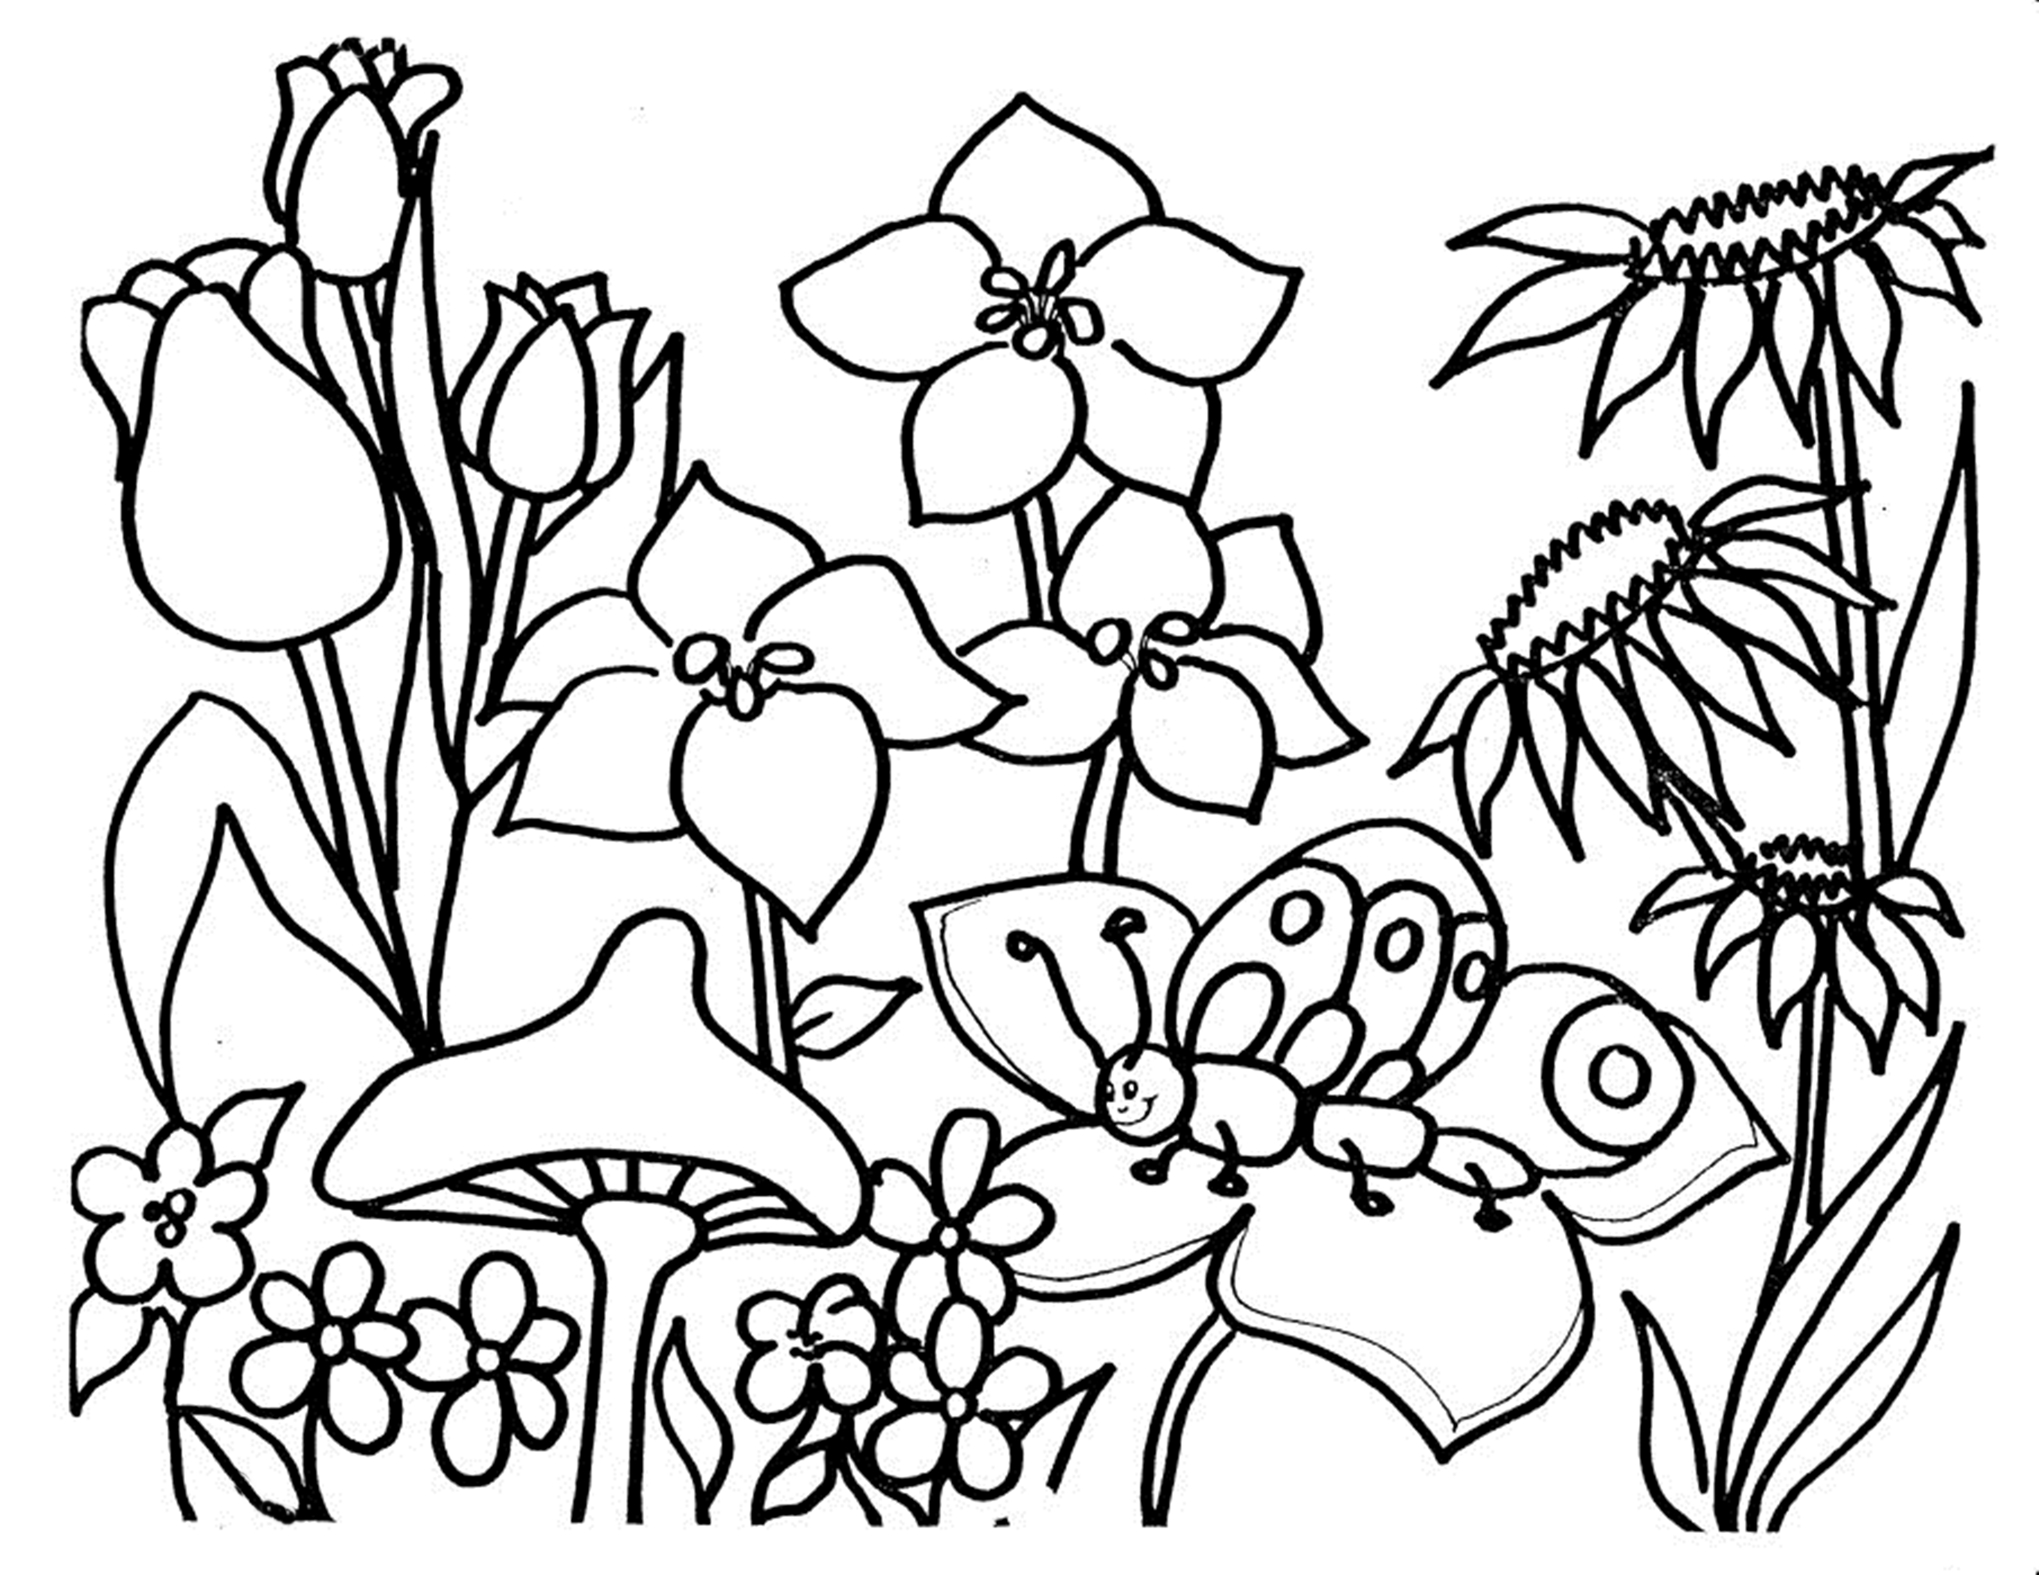 flower coloring pages to print free printable flower coloring pages for kids best print pages flower to coloring